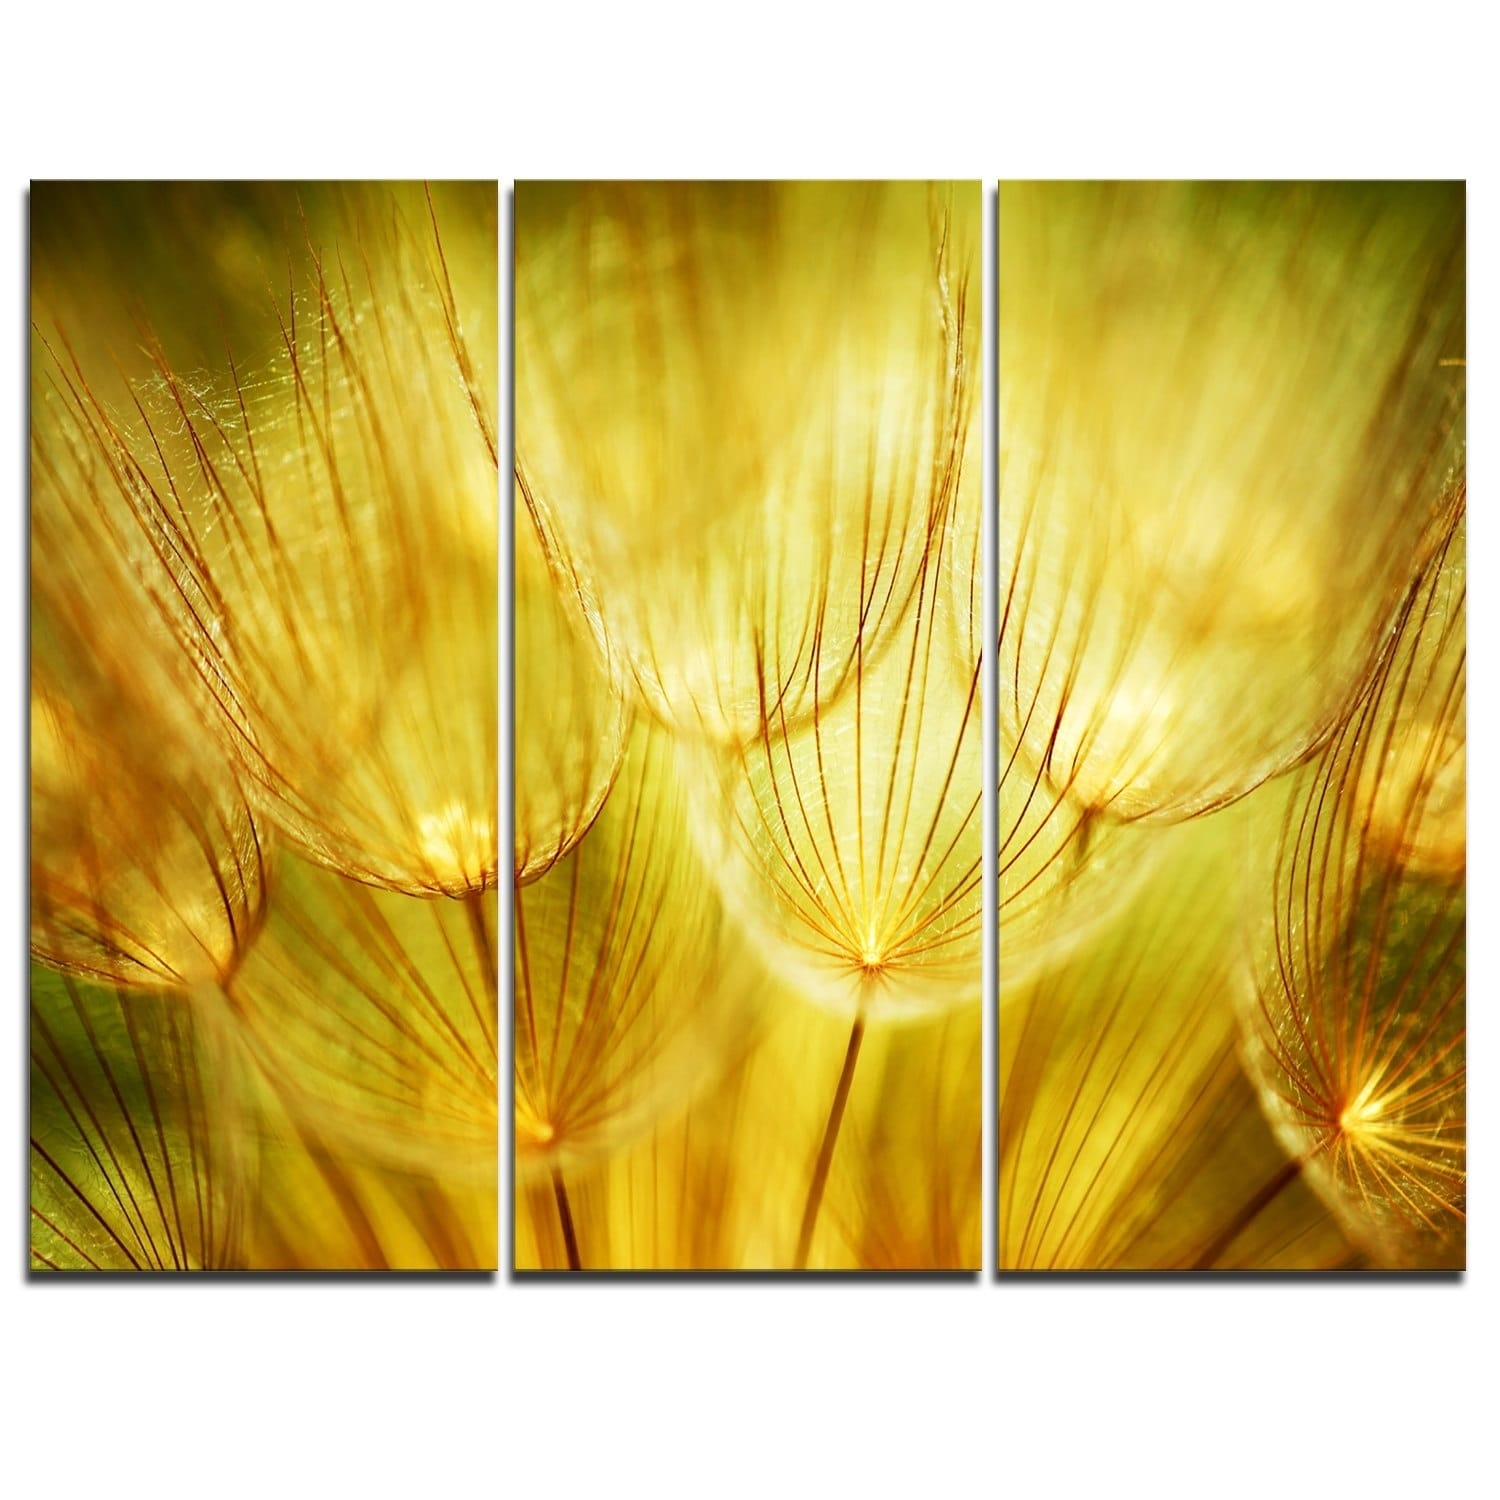 Wonderful Dandelion Vinyl Wall Art Photos - The Wall Art Decorations ...